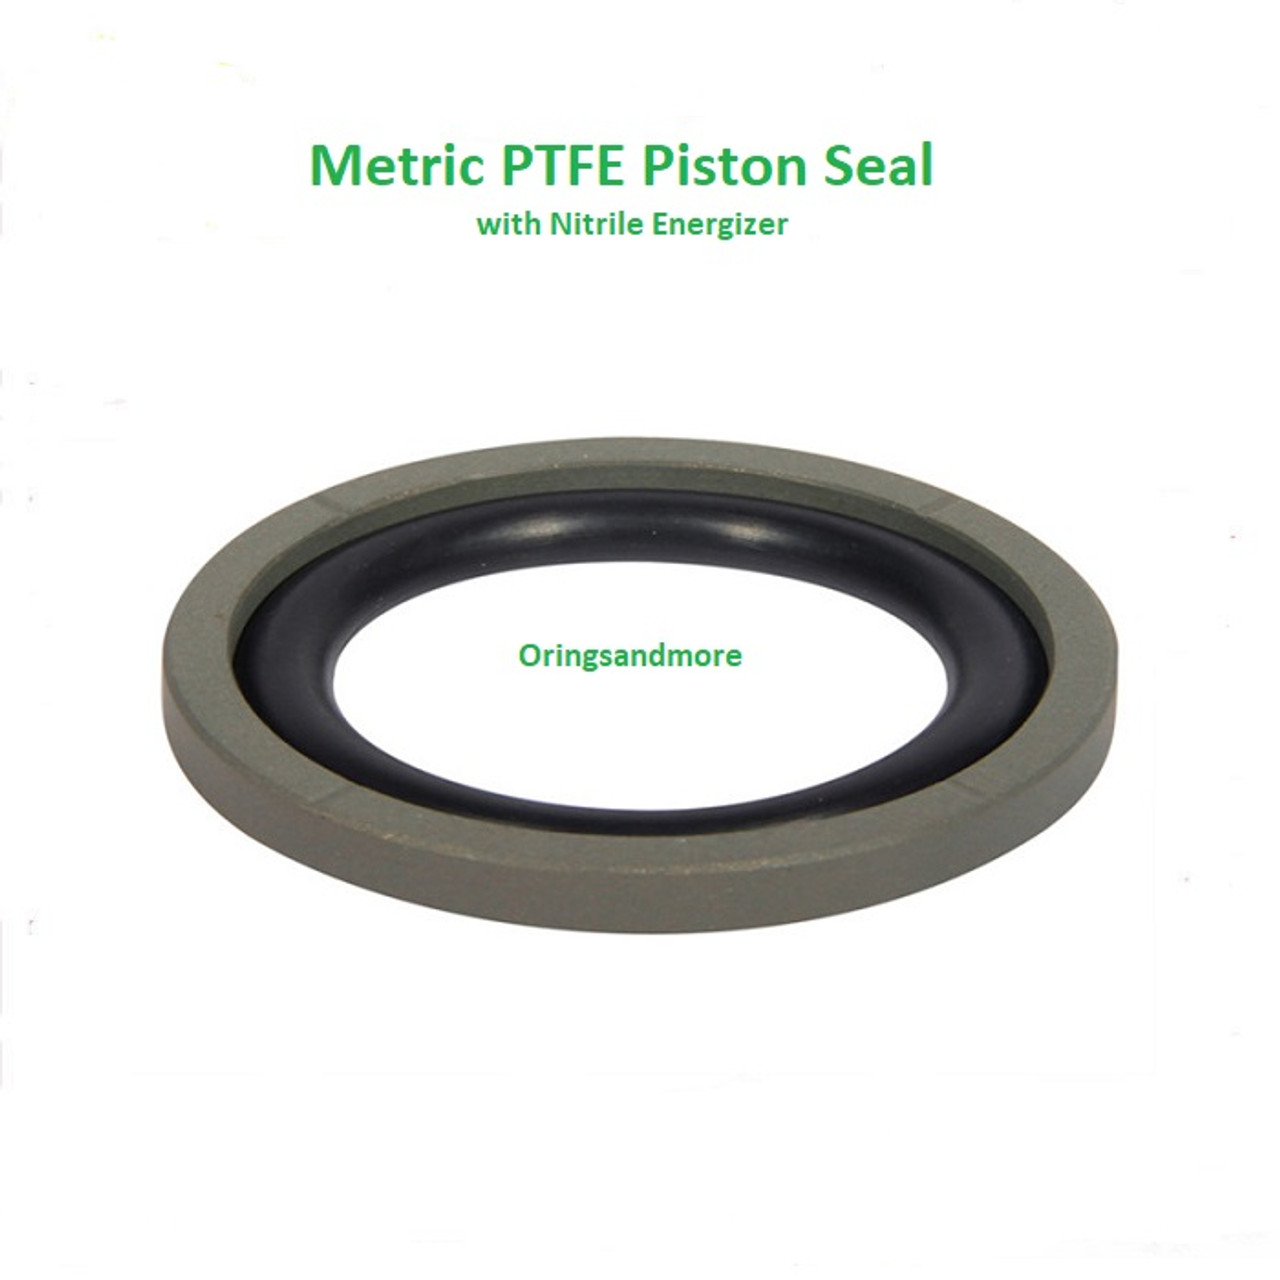 PTFE Piston Seal 75mm OD x 64mm ID x 4.2mm   Price for 1 pc